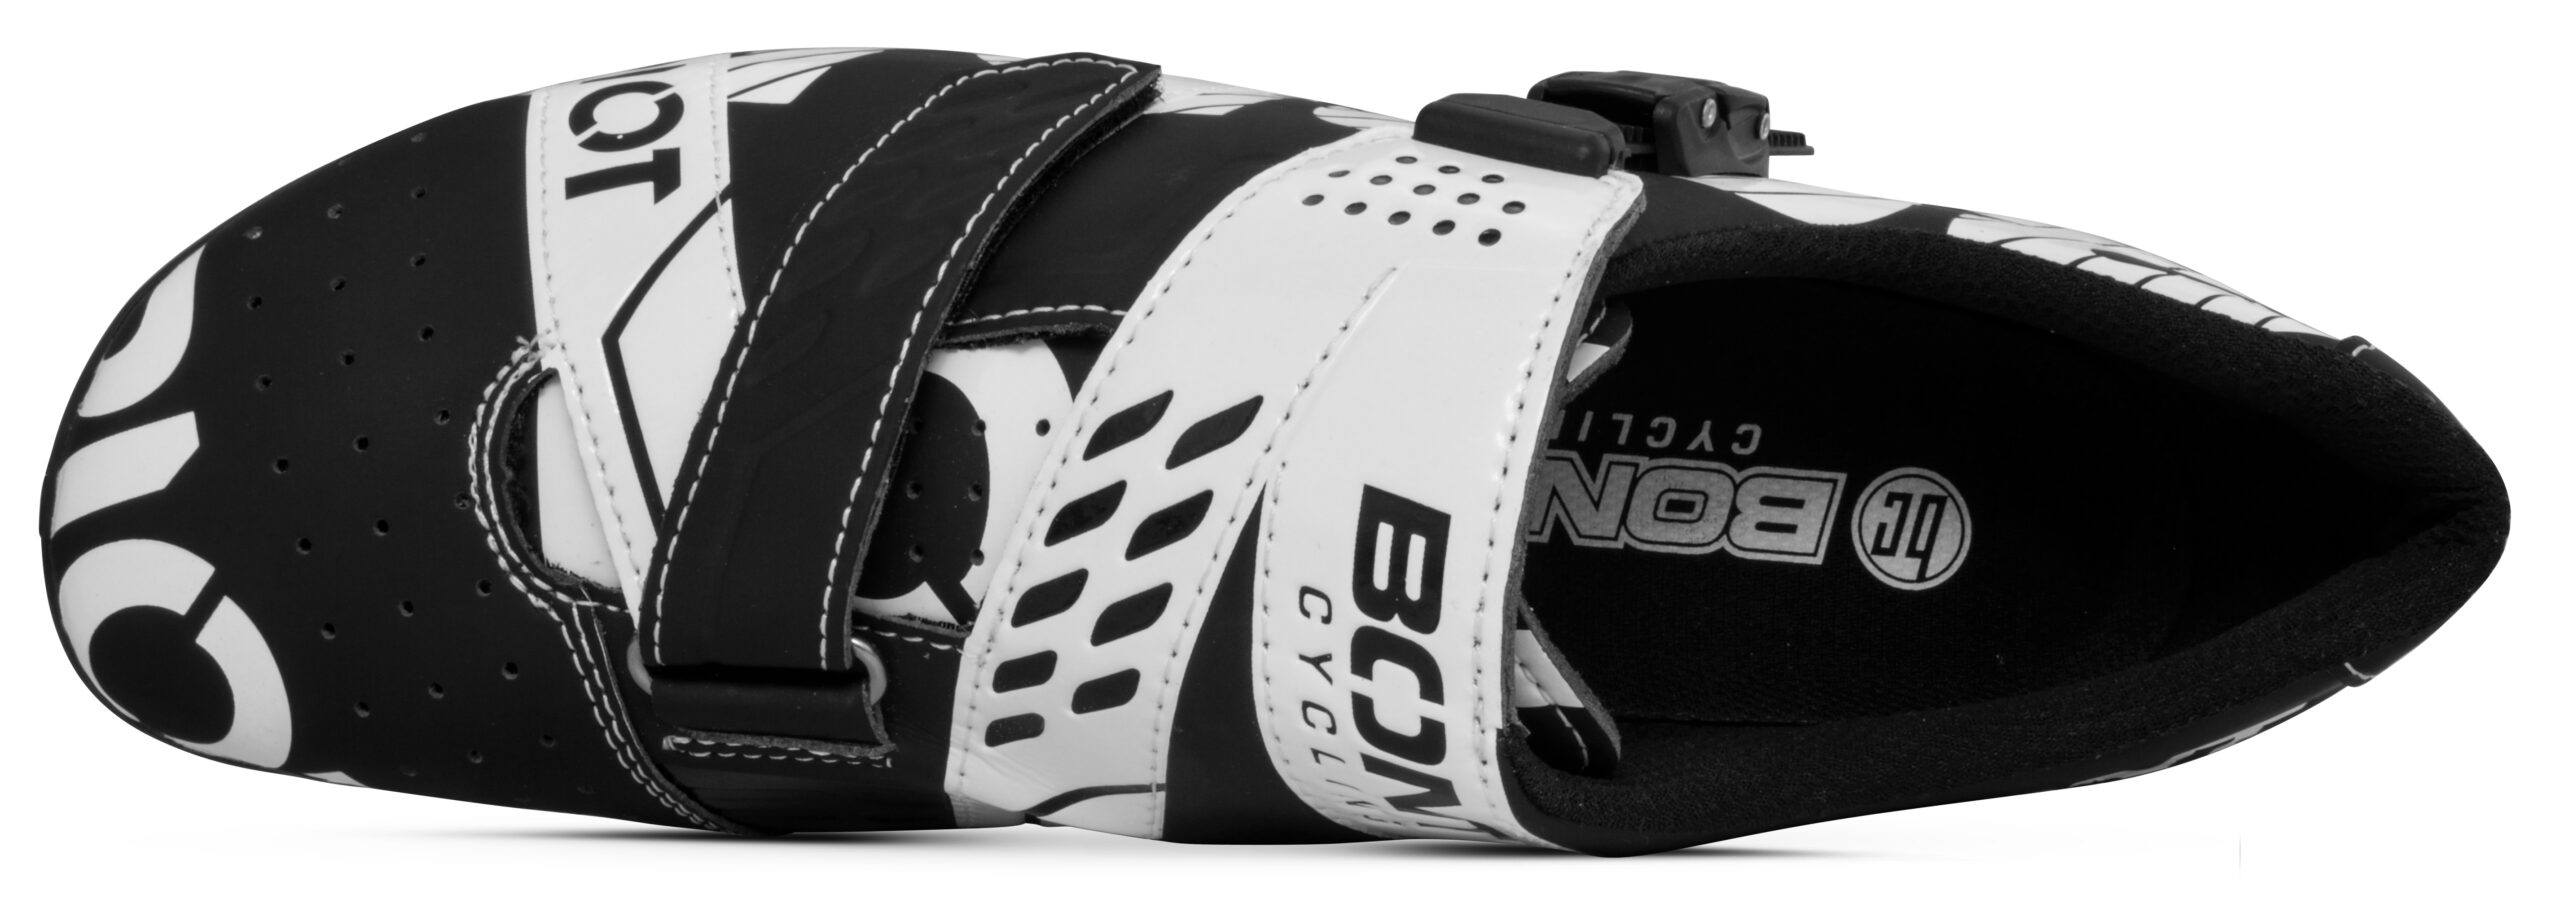 Riot Buckle Black-White_Top